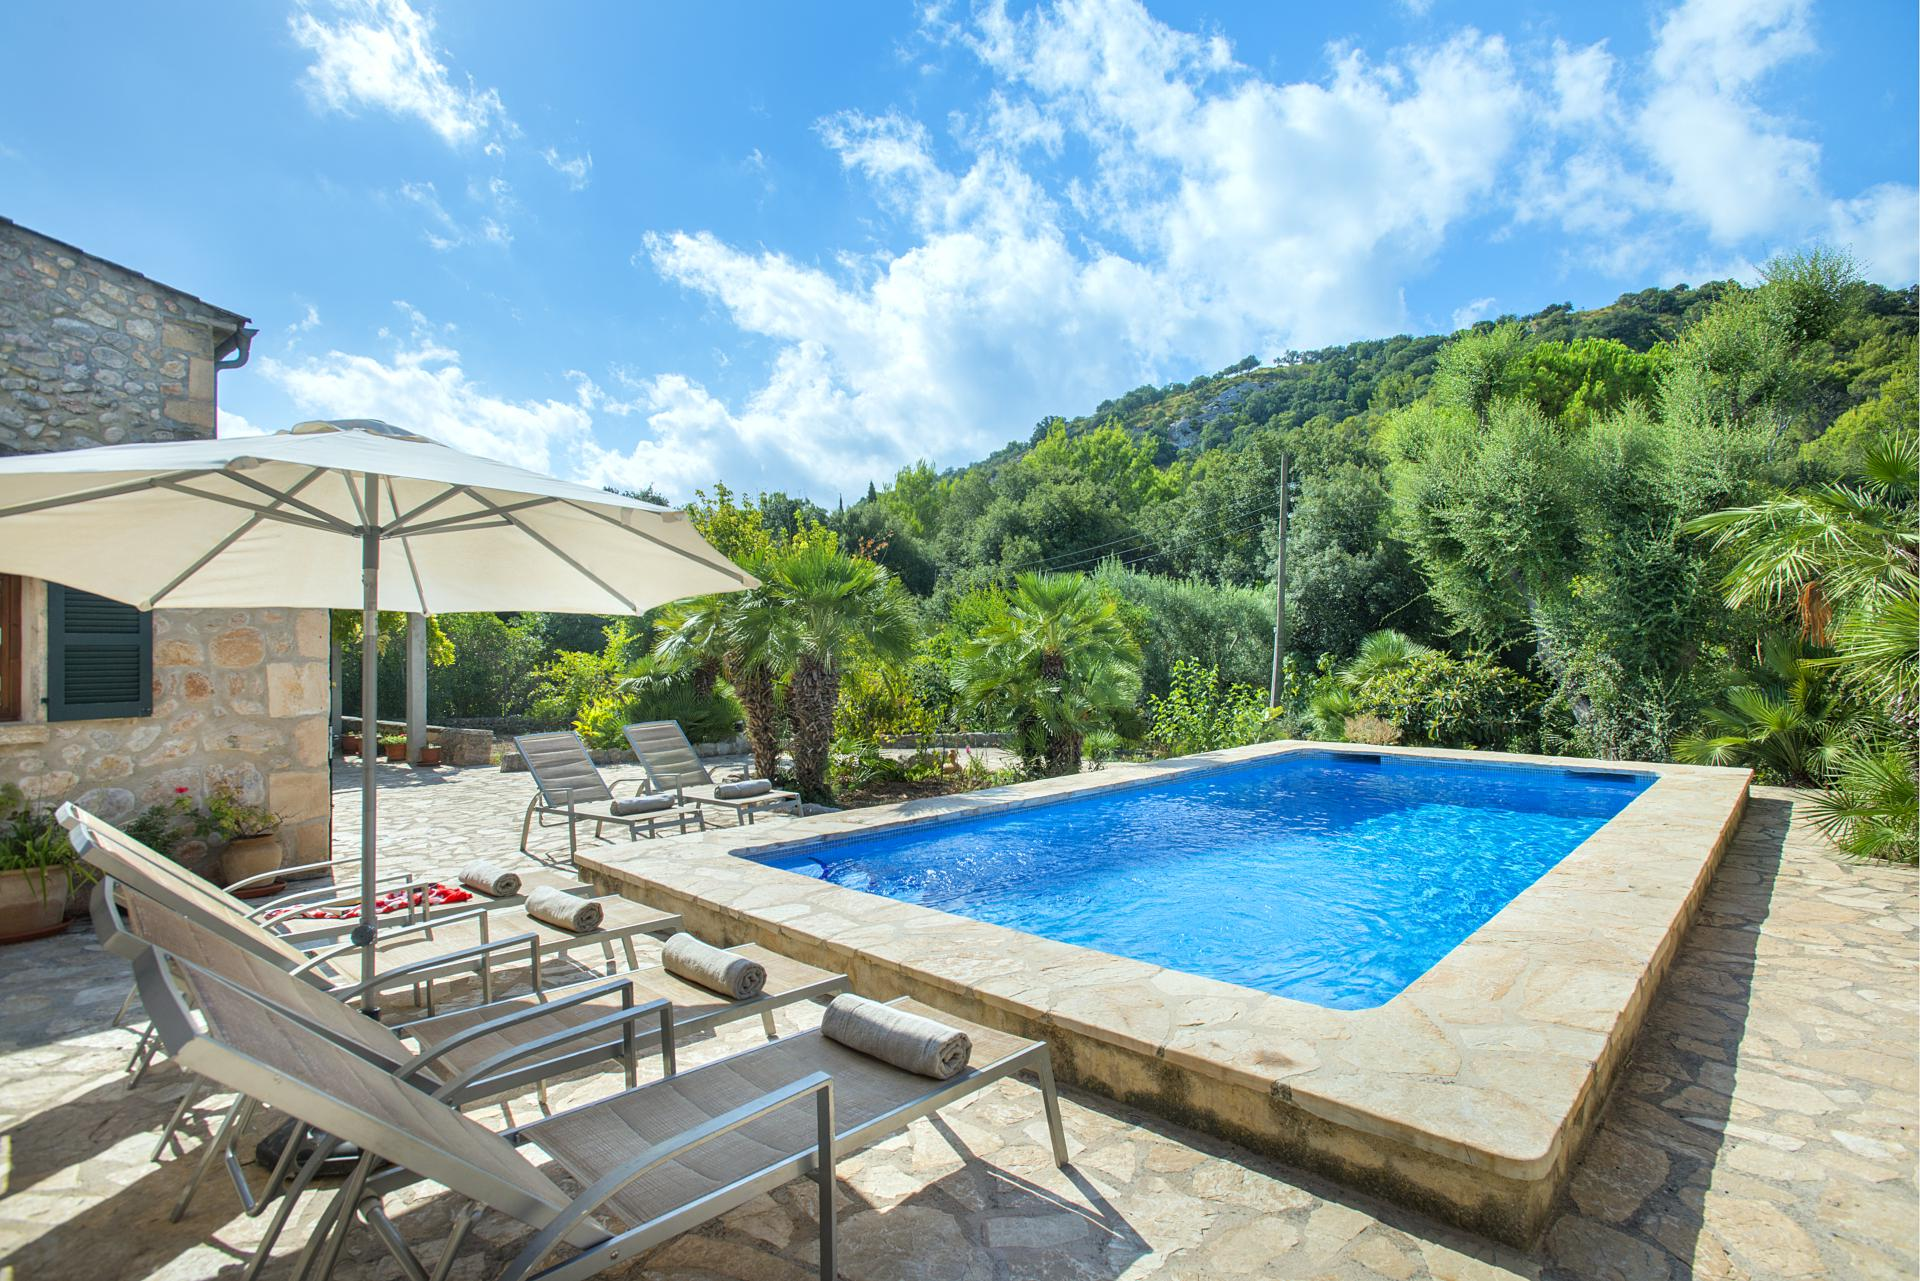 Enjoy the bucolic bliss of northern Mallorca by staying at Ca'n Roca